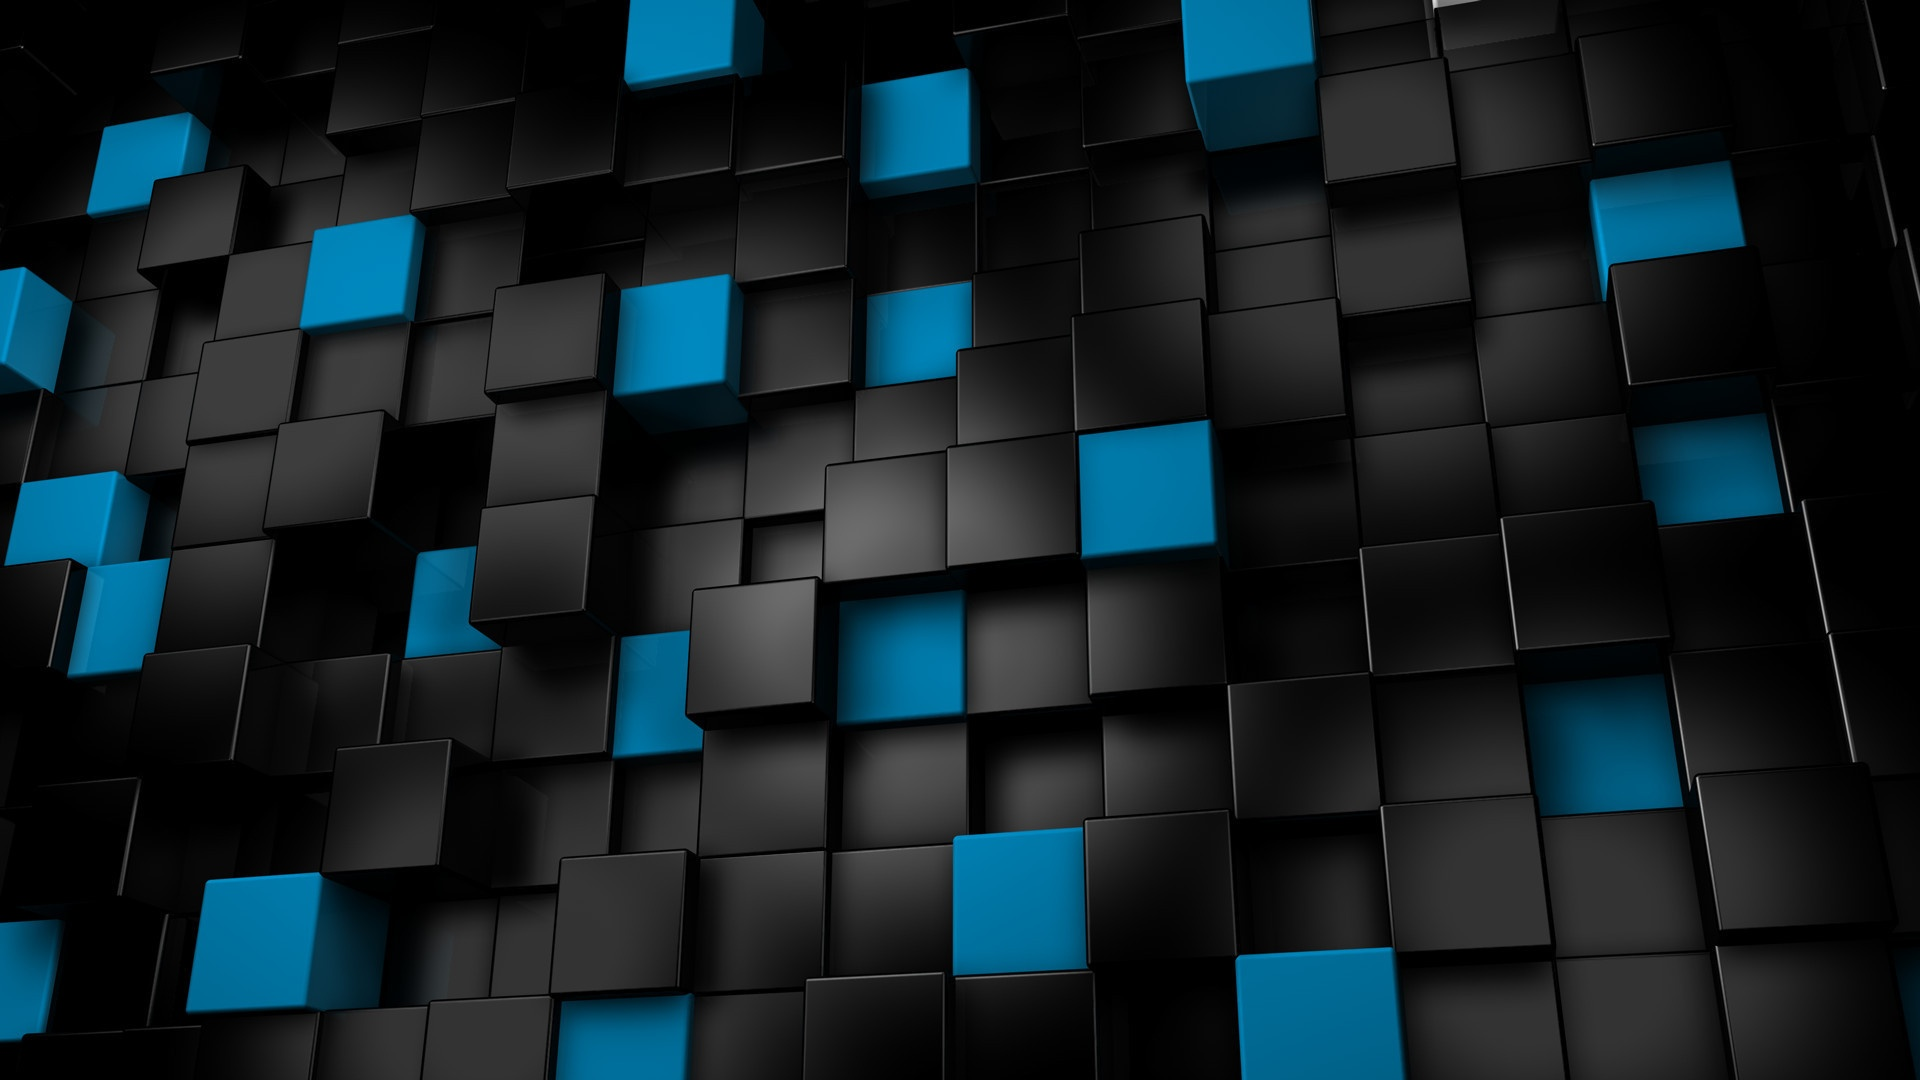 cubes backgrounds wallpapers1 wallpapers55com   Best Wallpapers 1920x1080